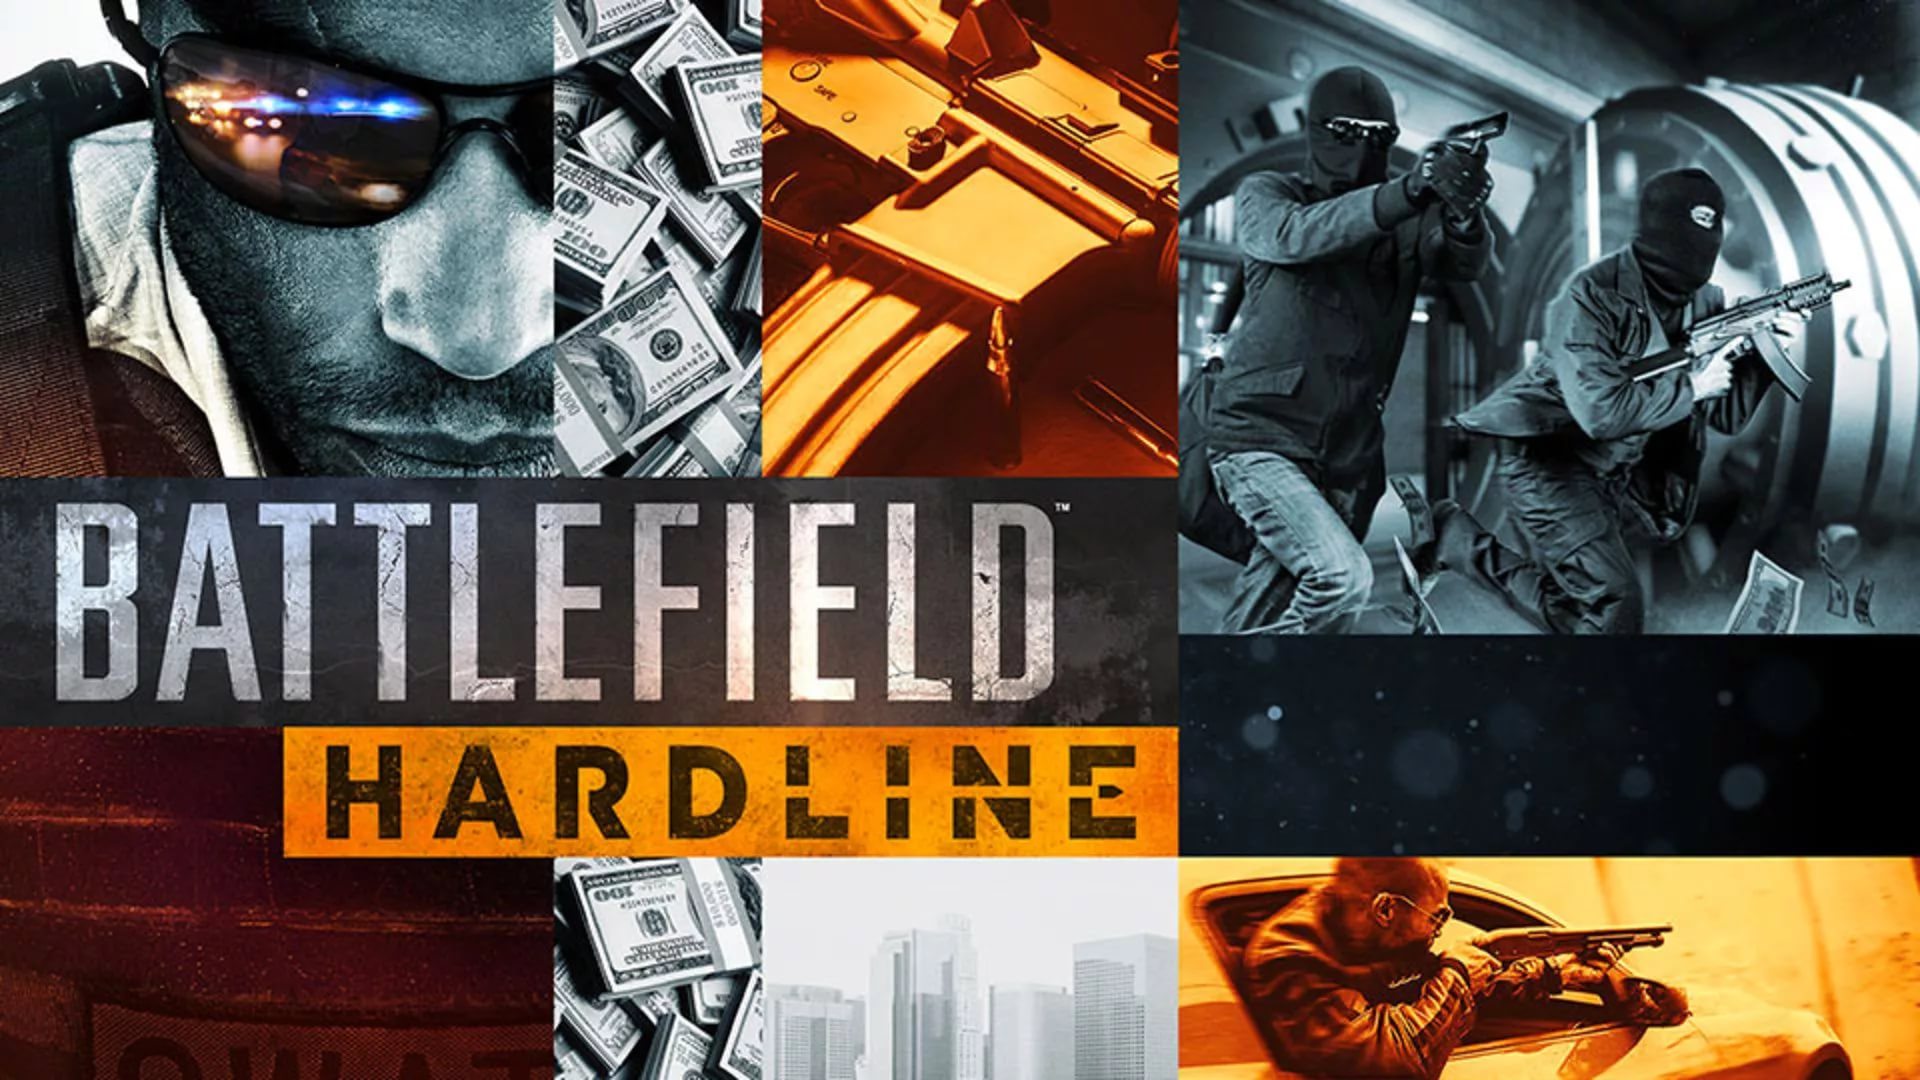 Battlefield Hardline + Reply to question + Bonus + Disc